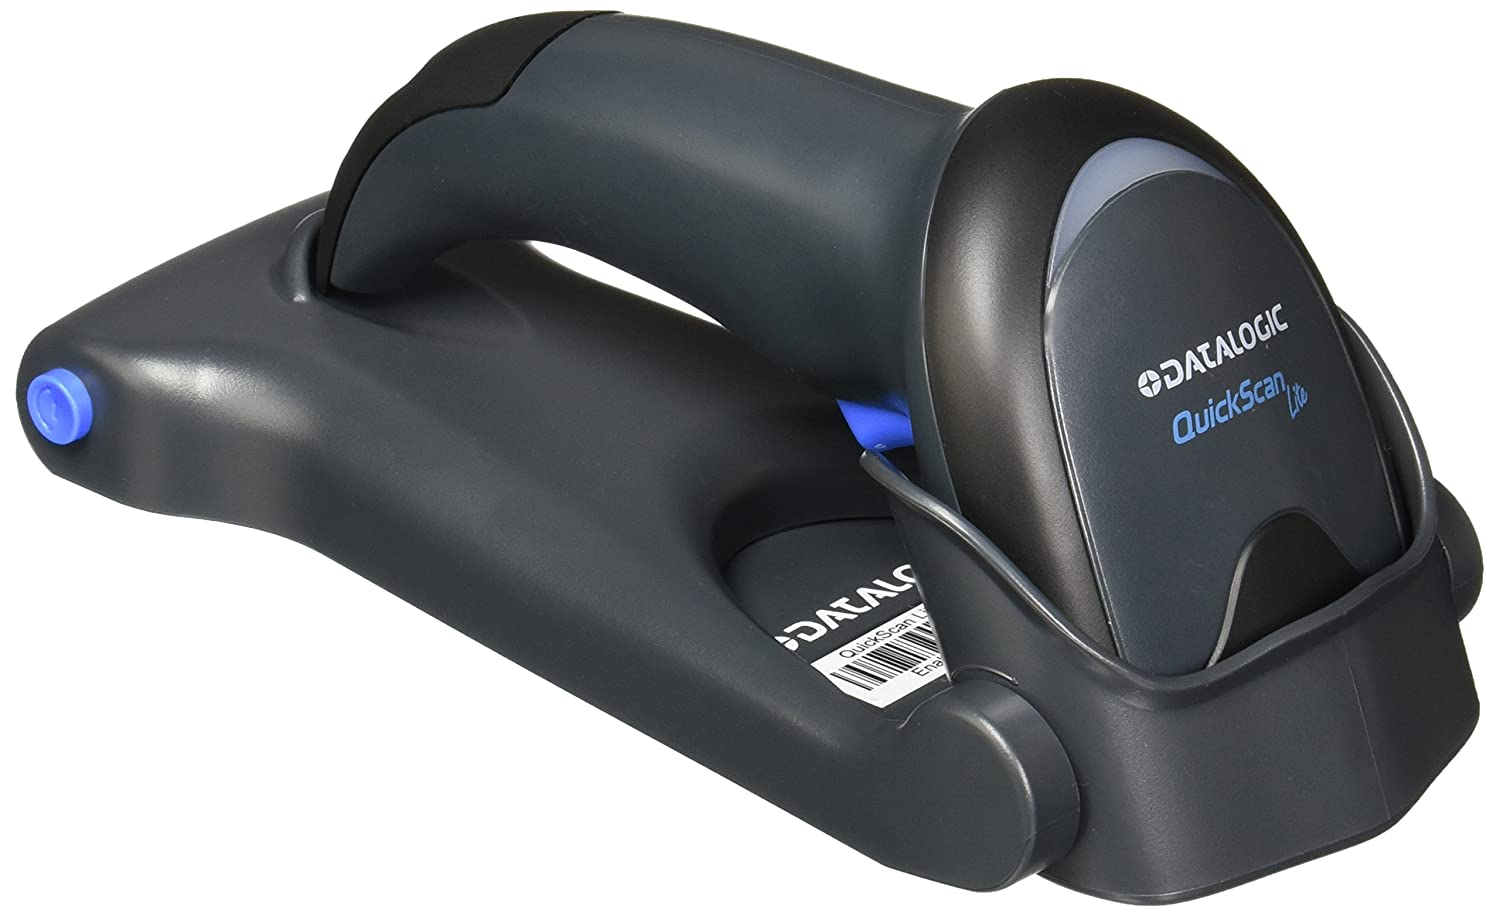 Datalogic QuickScan Lite QW2100; Laser; EAN 5; EAN-13; EAN-8; GS1-128 (UCC/EAN-128); 400 reads/s; Wired; USB; DC DL-HHS-GENERAL QUICK SCAN LITE QW2120